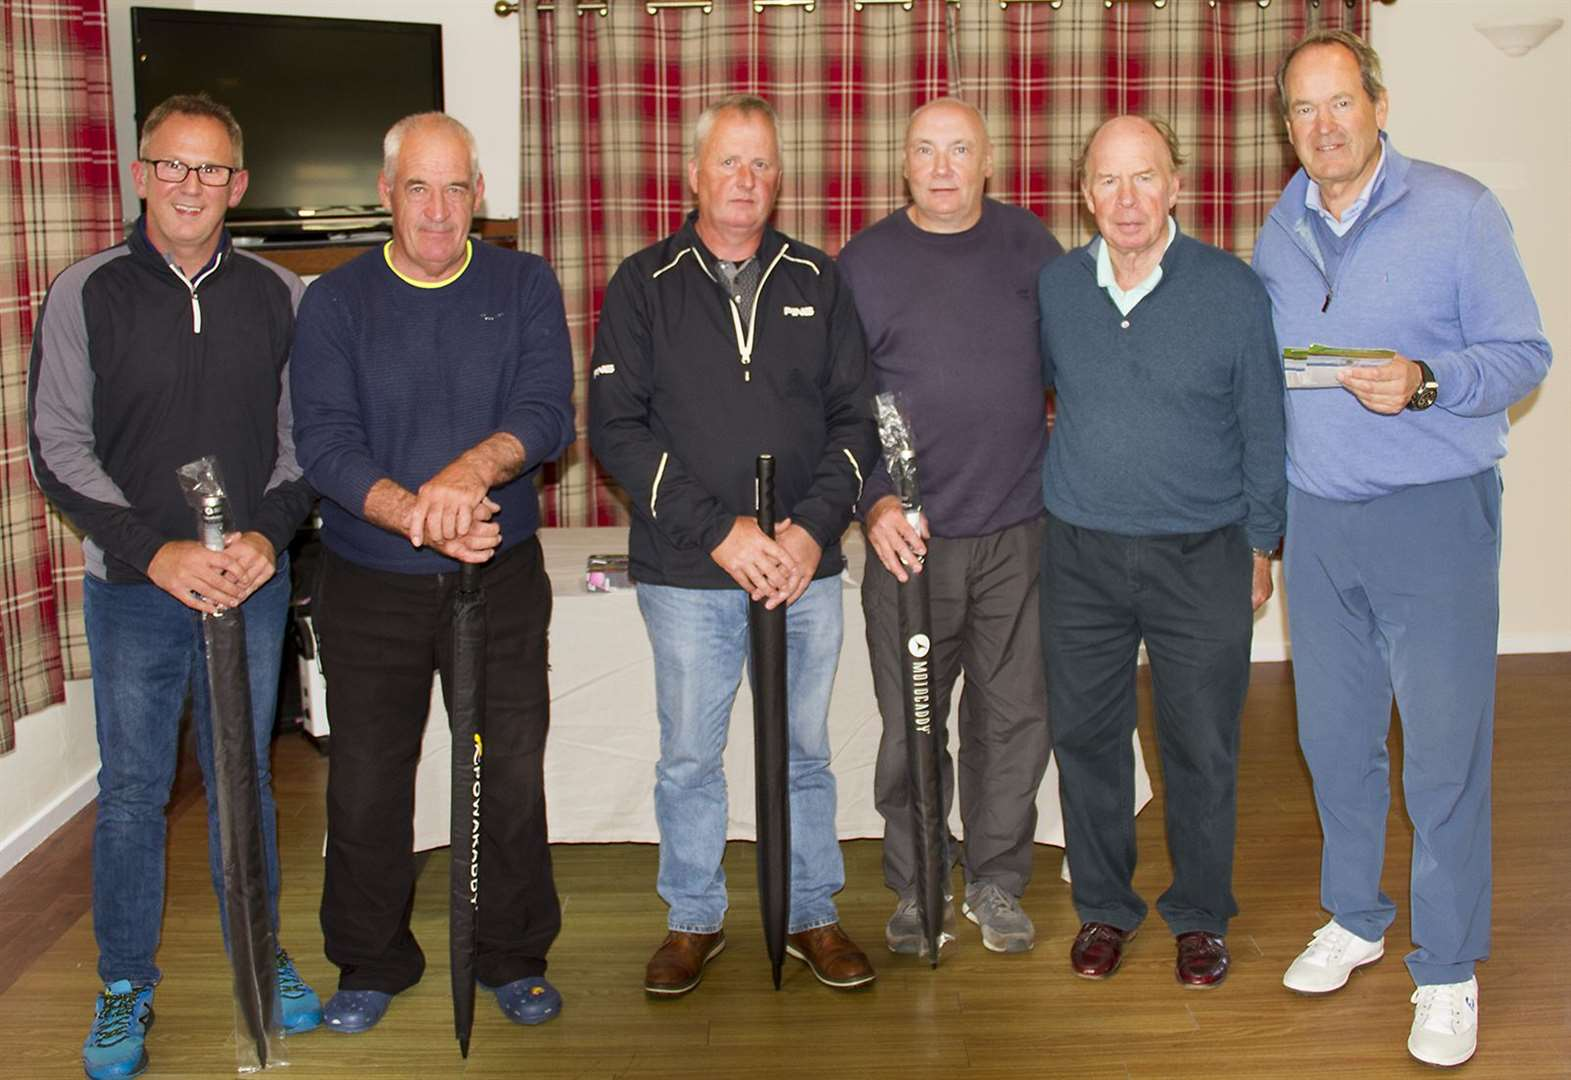 Home team's success in Texas Scramble at Reay